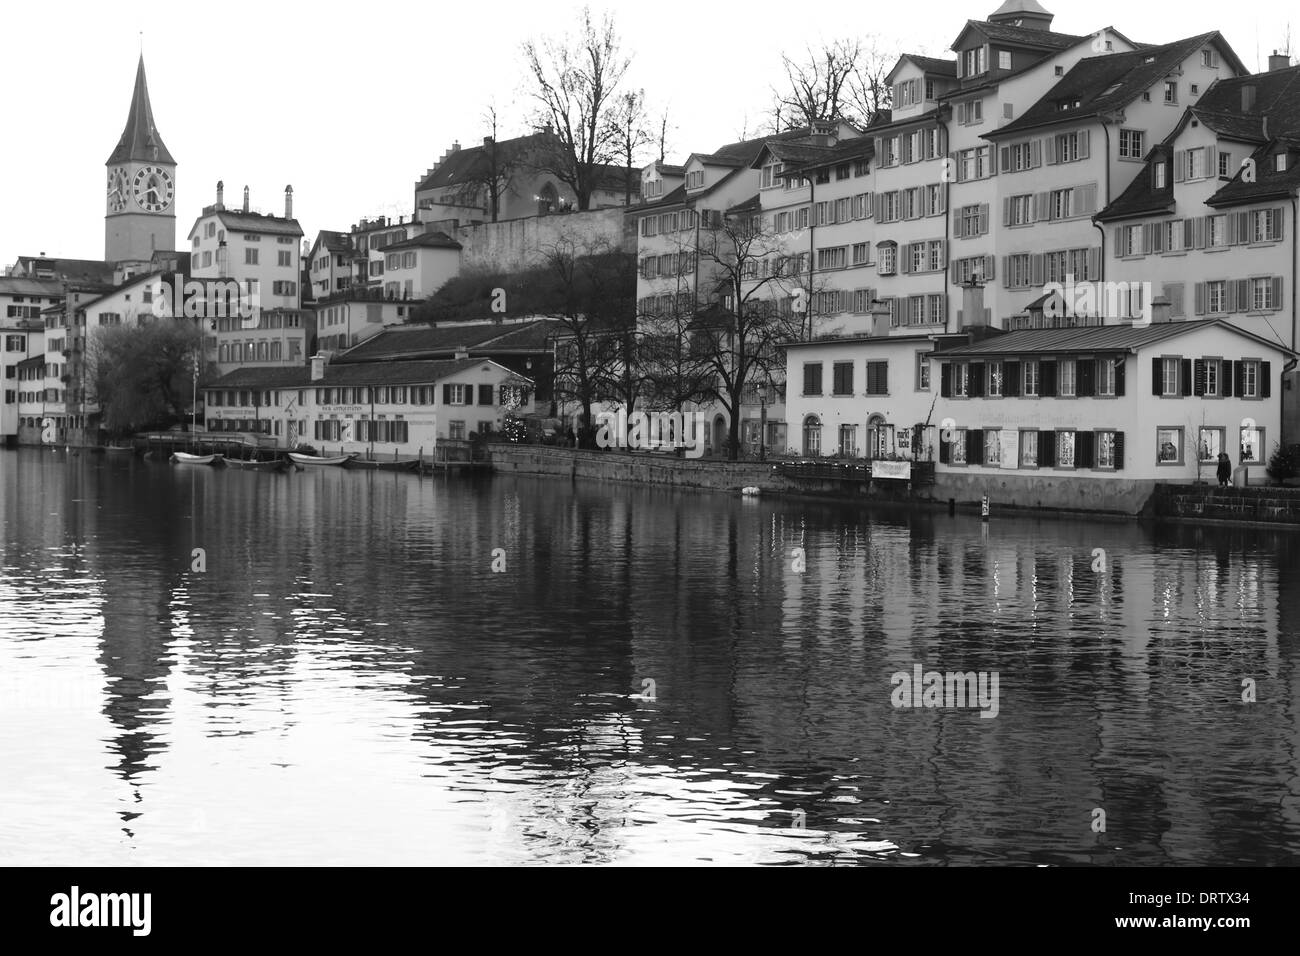 Evening view of Zurich, Switzerland, in black and white - Stock Image